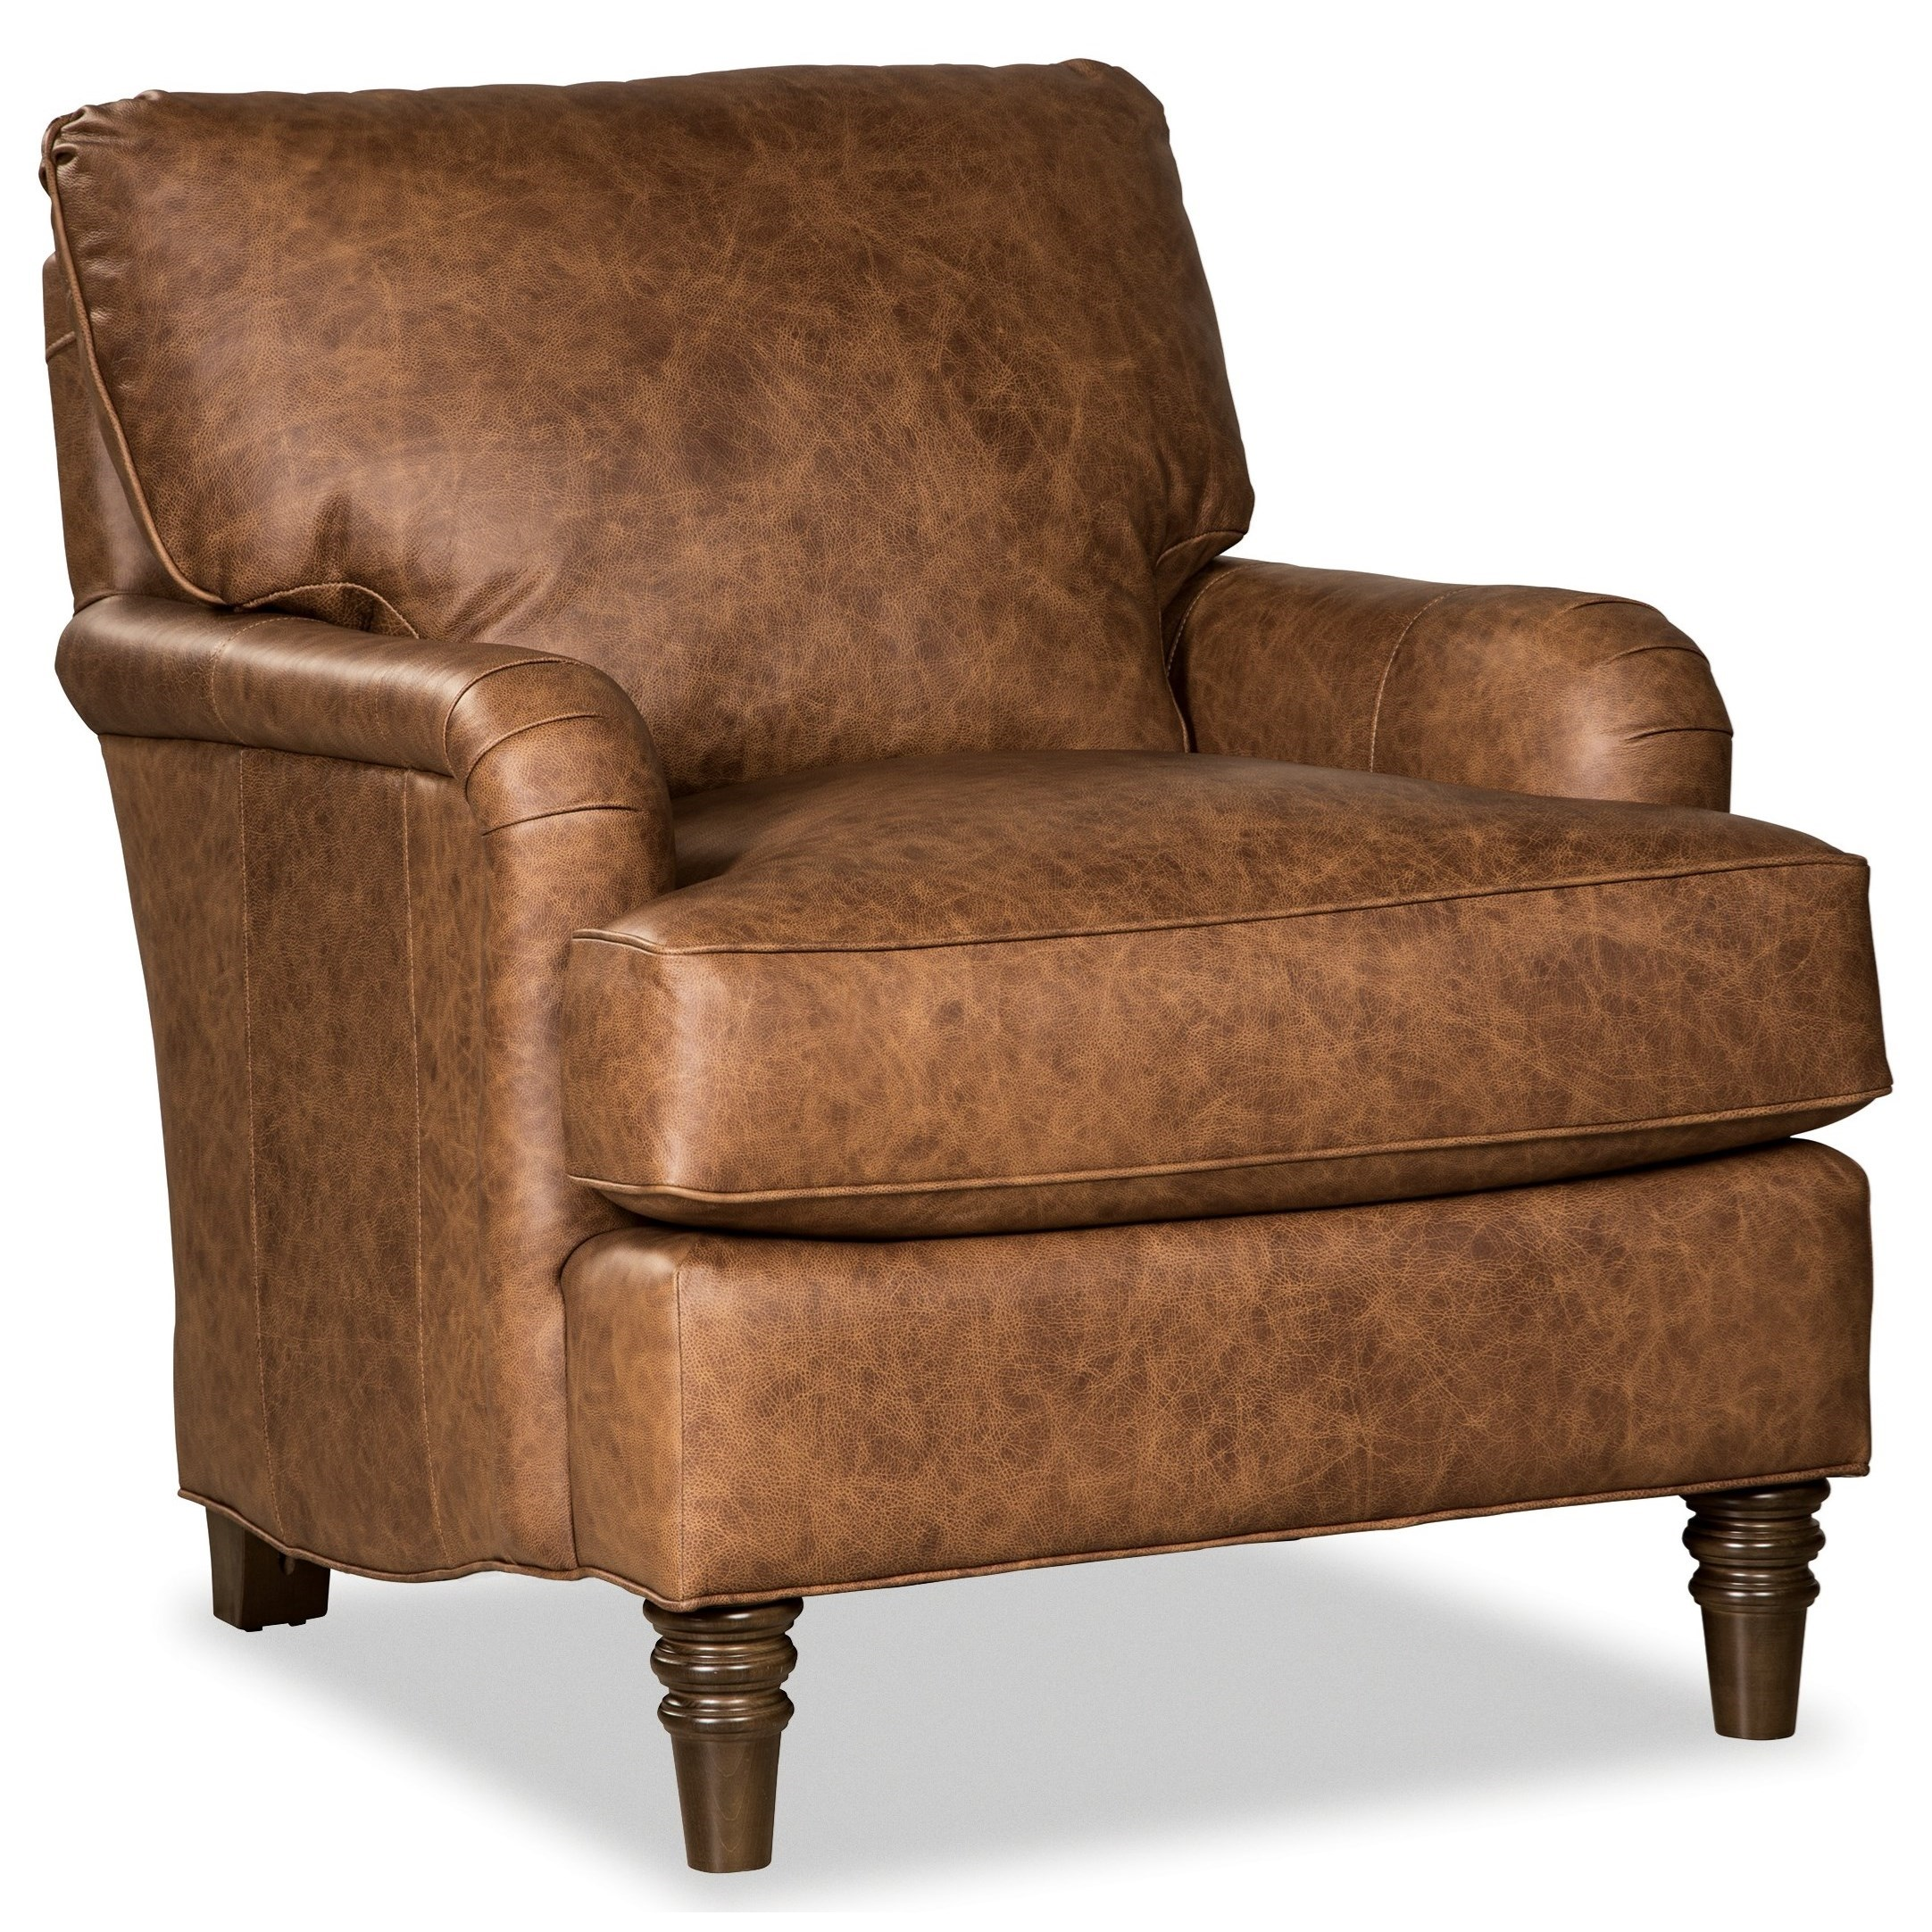 L021910 Chair by Craftmaster at Baer's Furniture